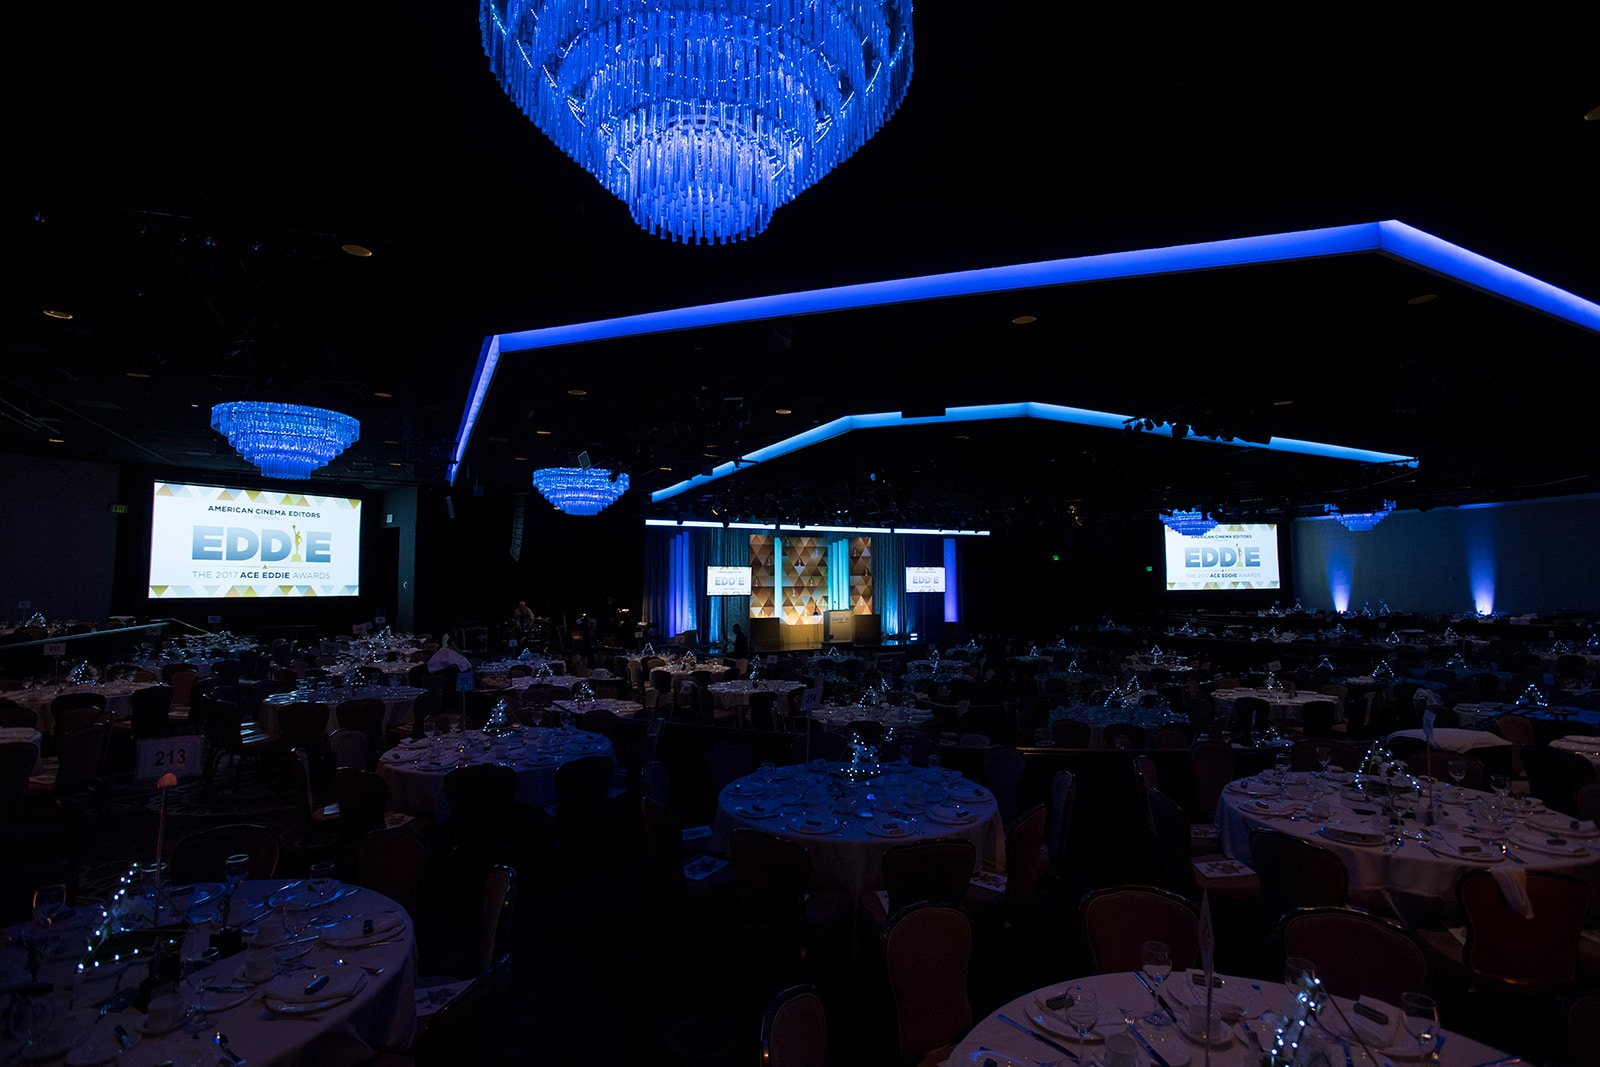 Beverly Hilton International Ballroom – Beverly Hills, California